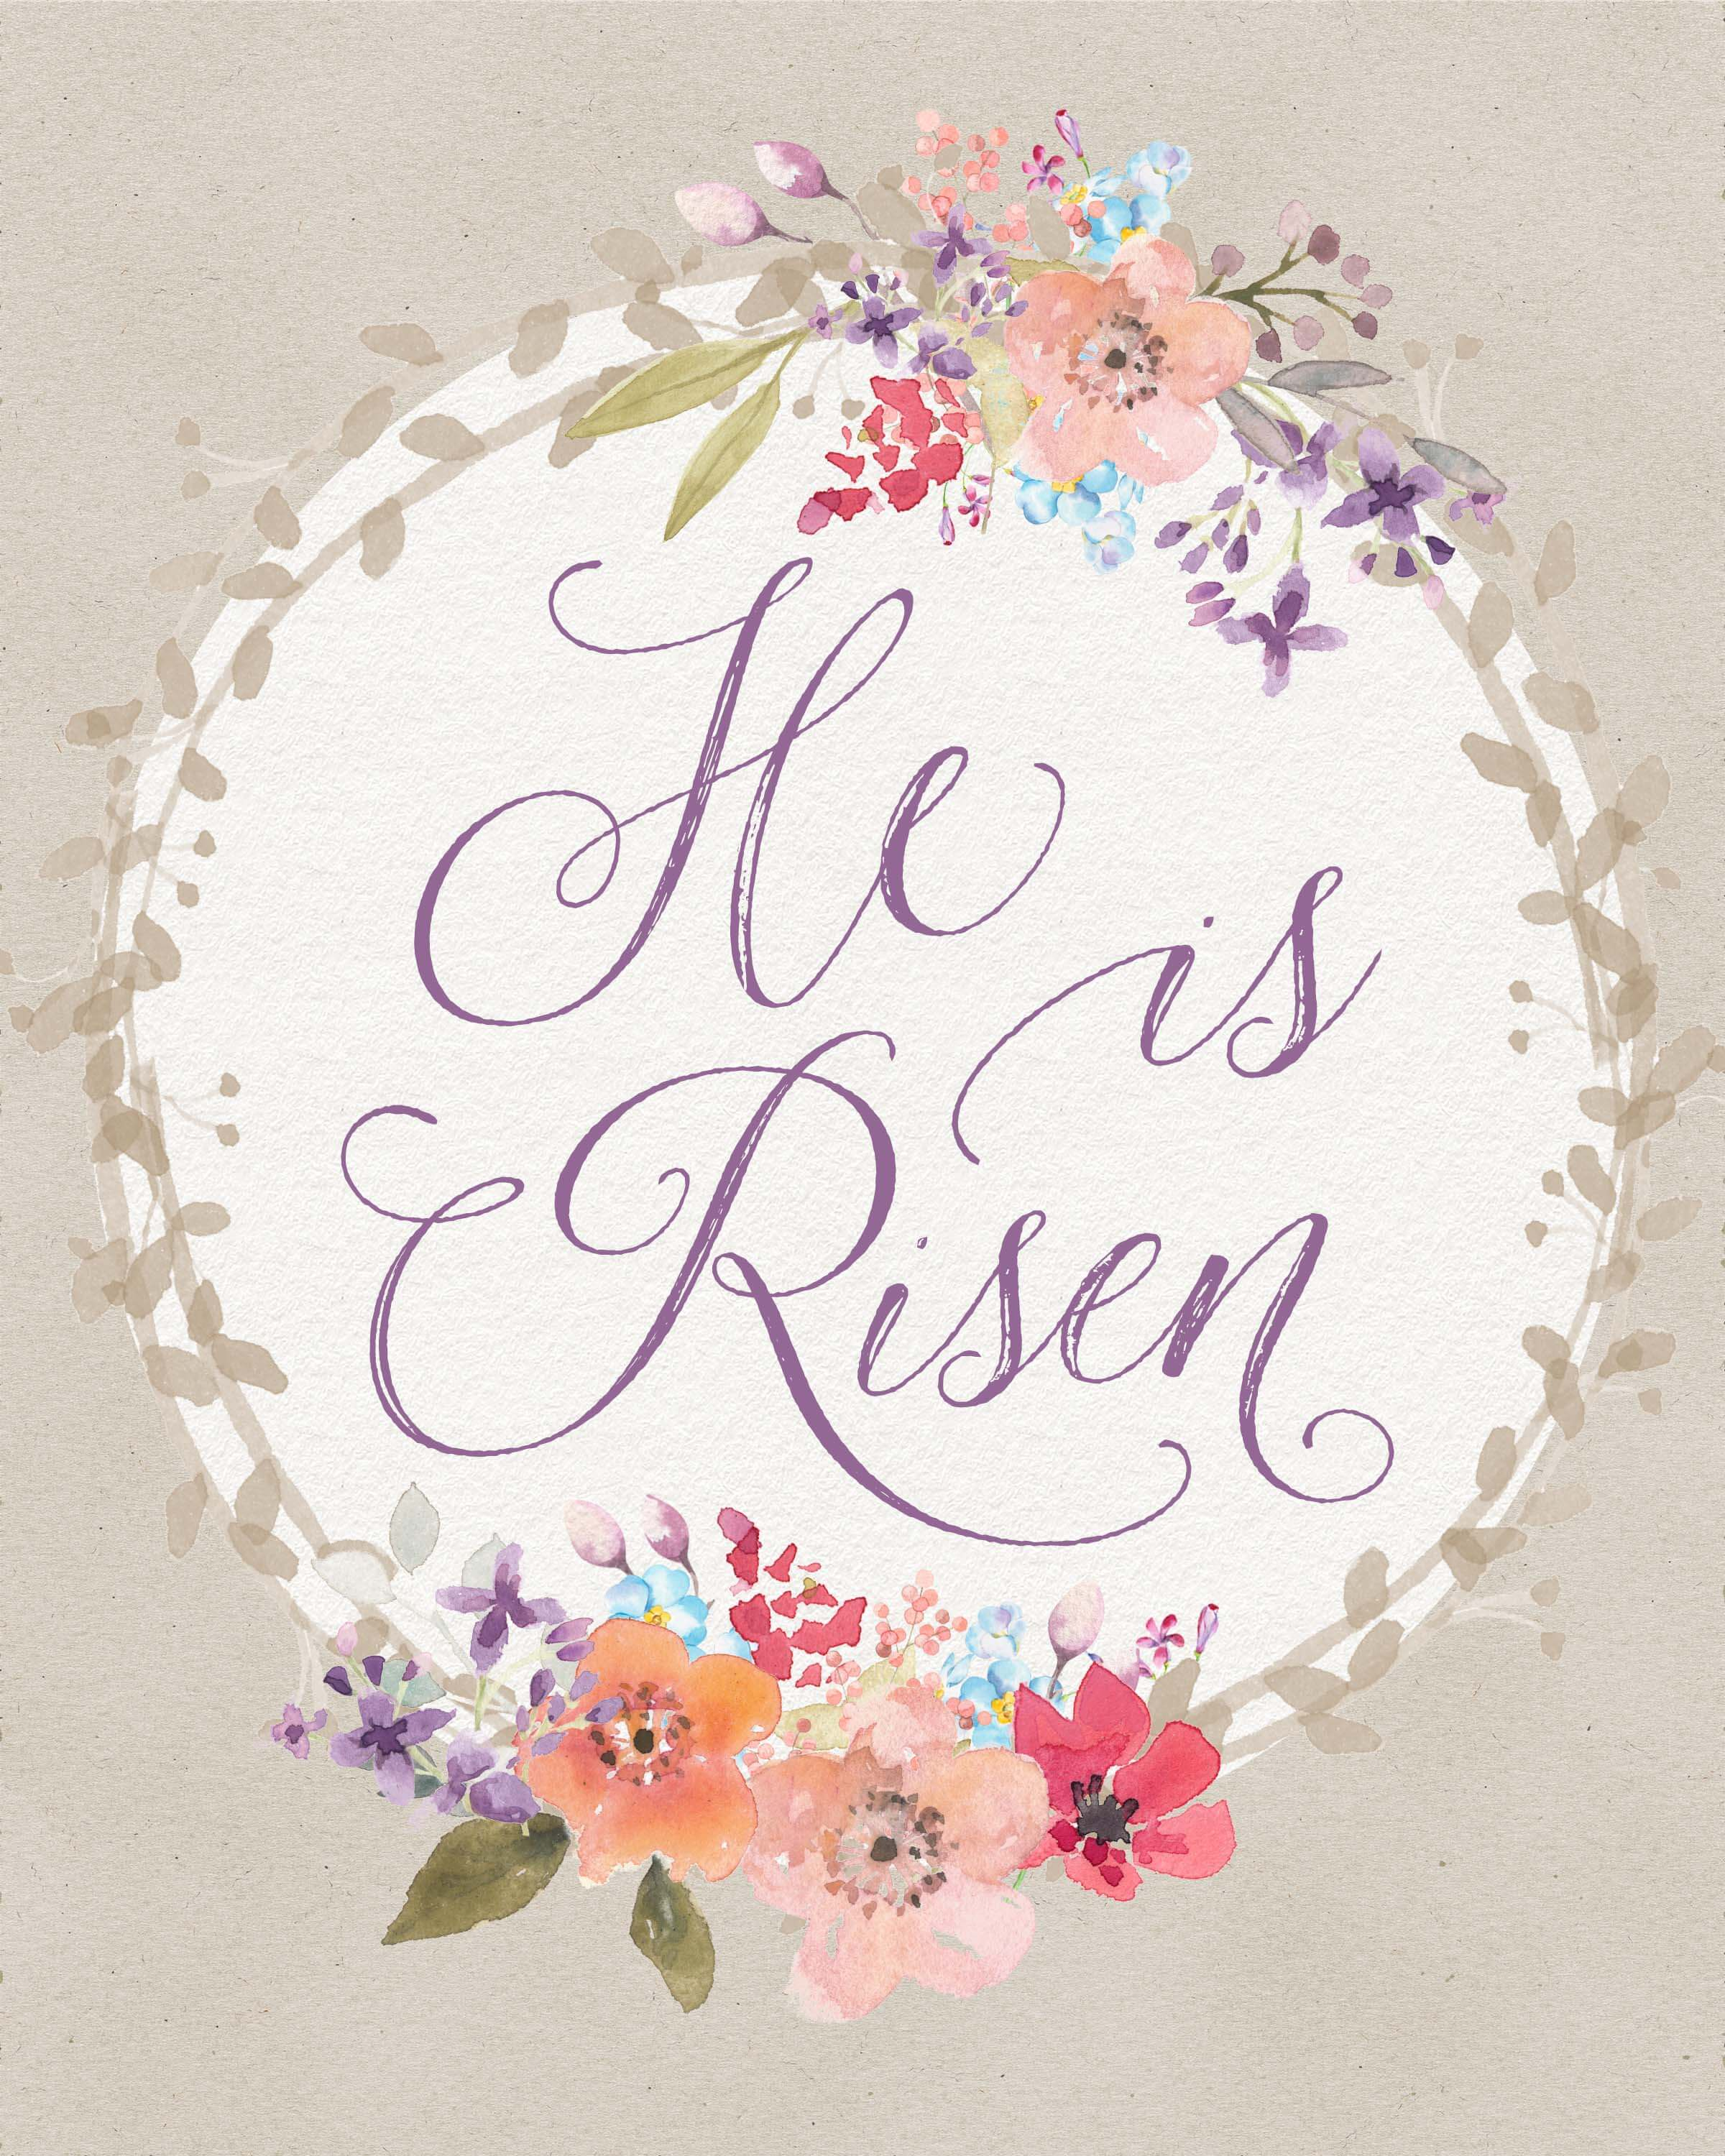 photograph relating to He is Risen Printable titled Free of charge Easter Printable towards ! \